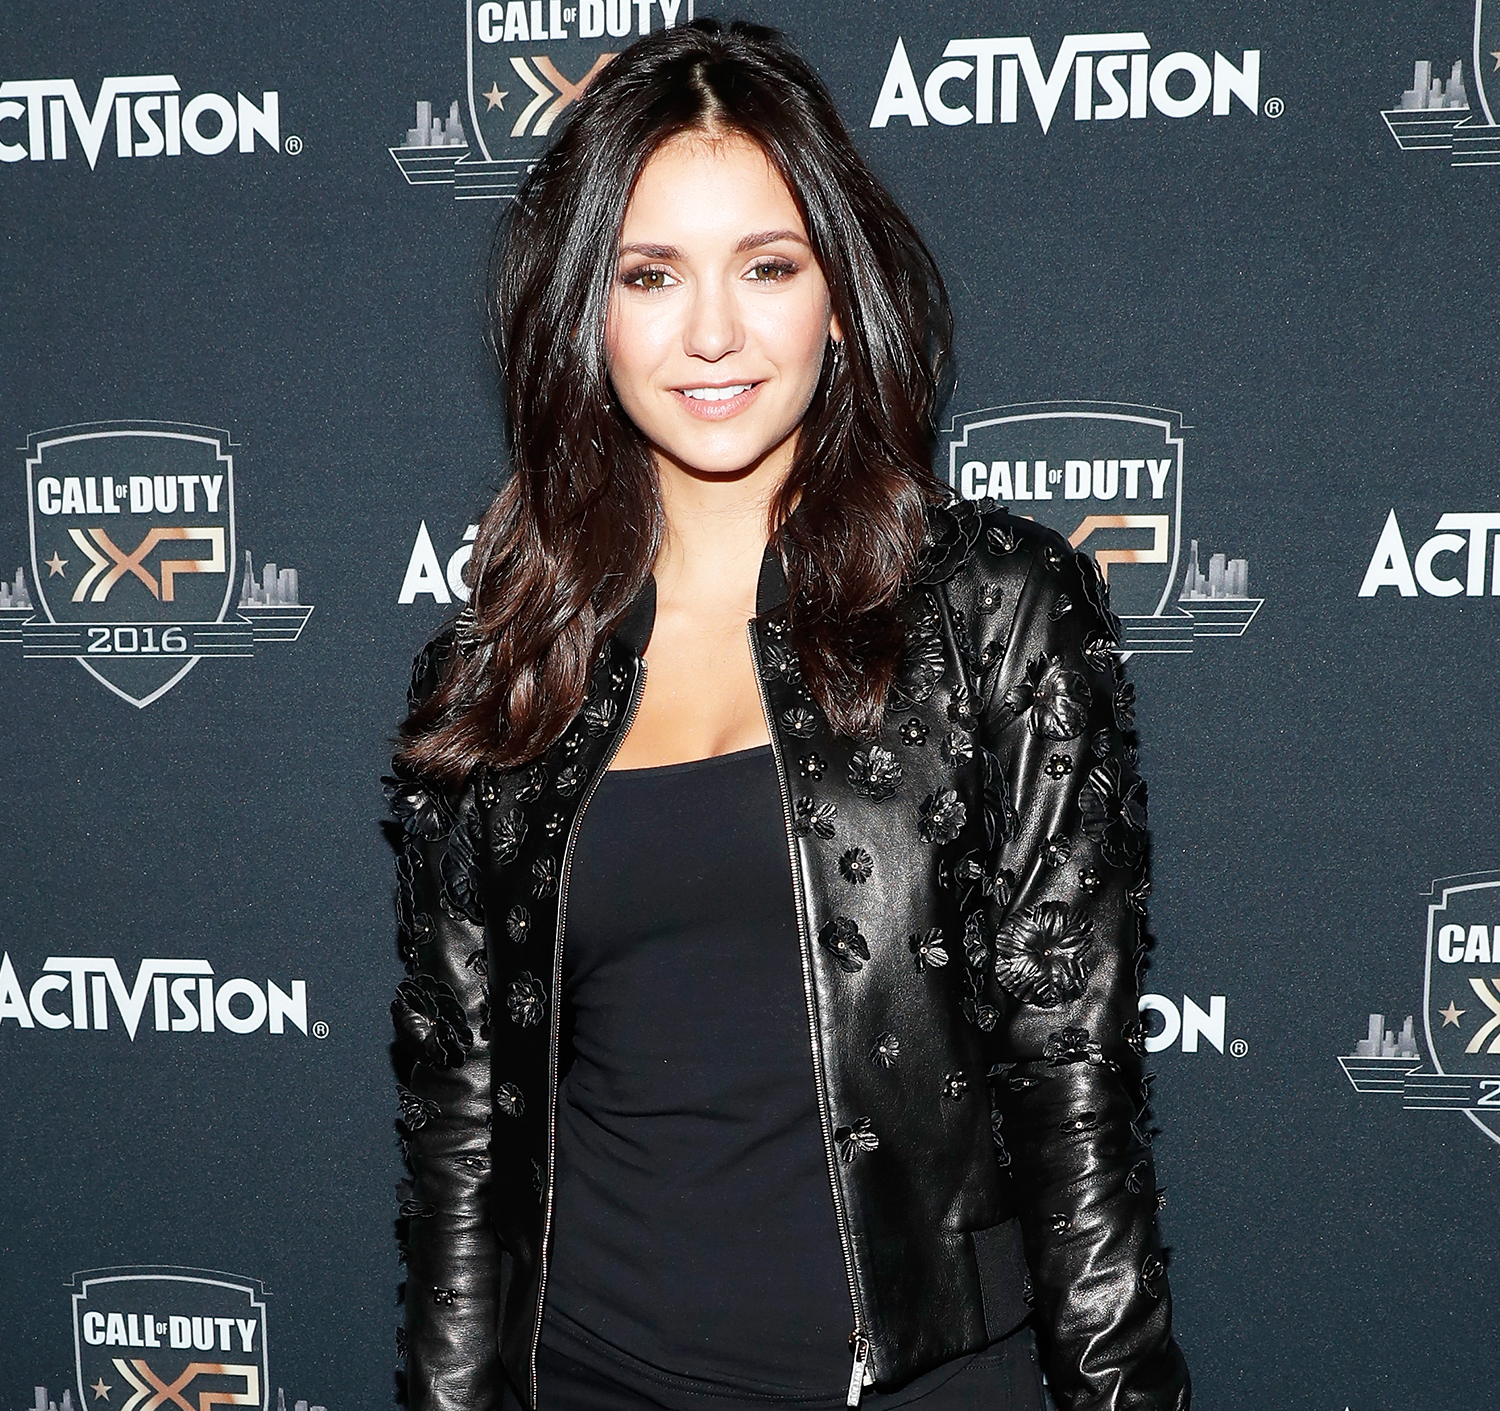 Nina Dobrev at the 'Call of Duty: Infinite Warfare' event in L.A.